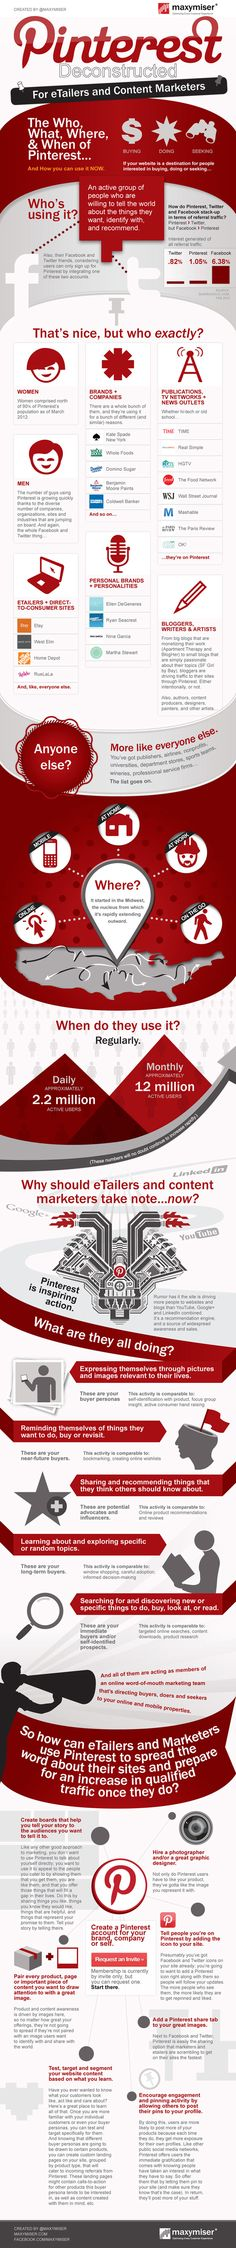 Infographic - Pinterest for retailers and content marketers